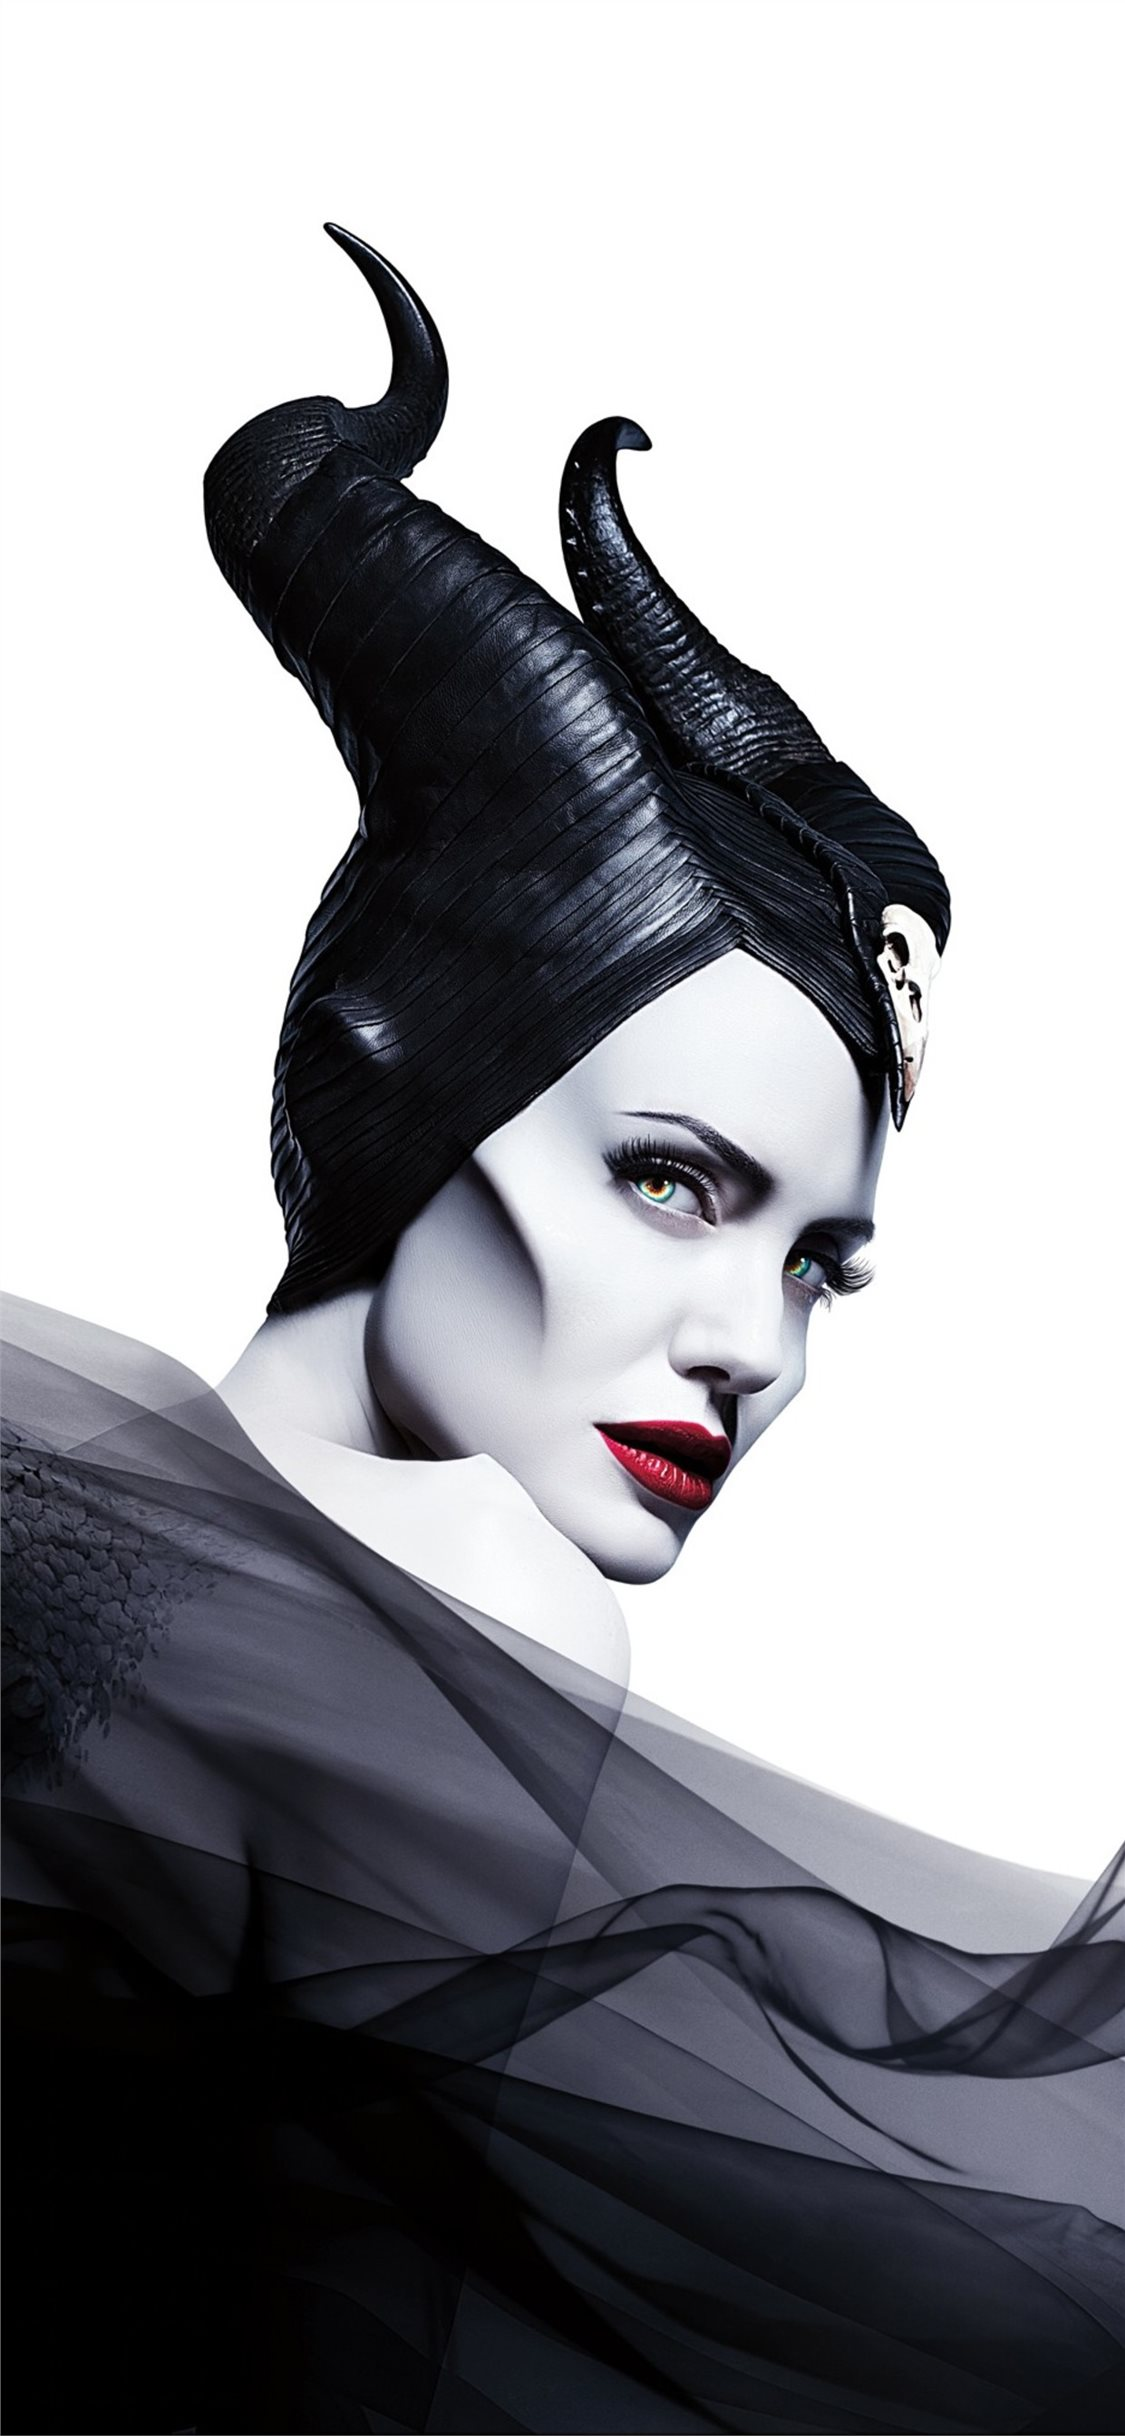 Maleficent Mistress Of Evil 4k 2019 Iphone 11 Wallpapers